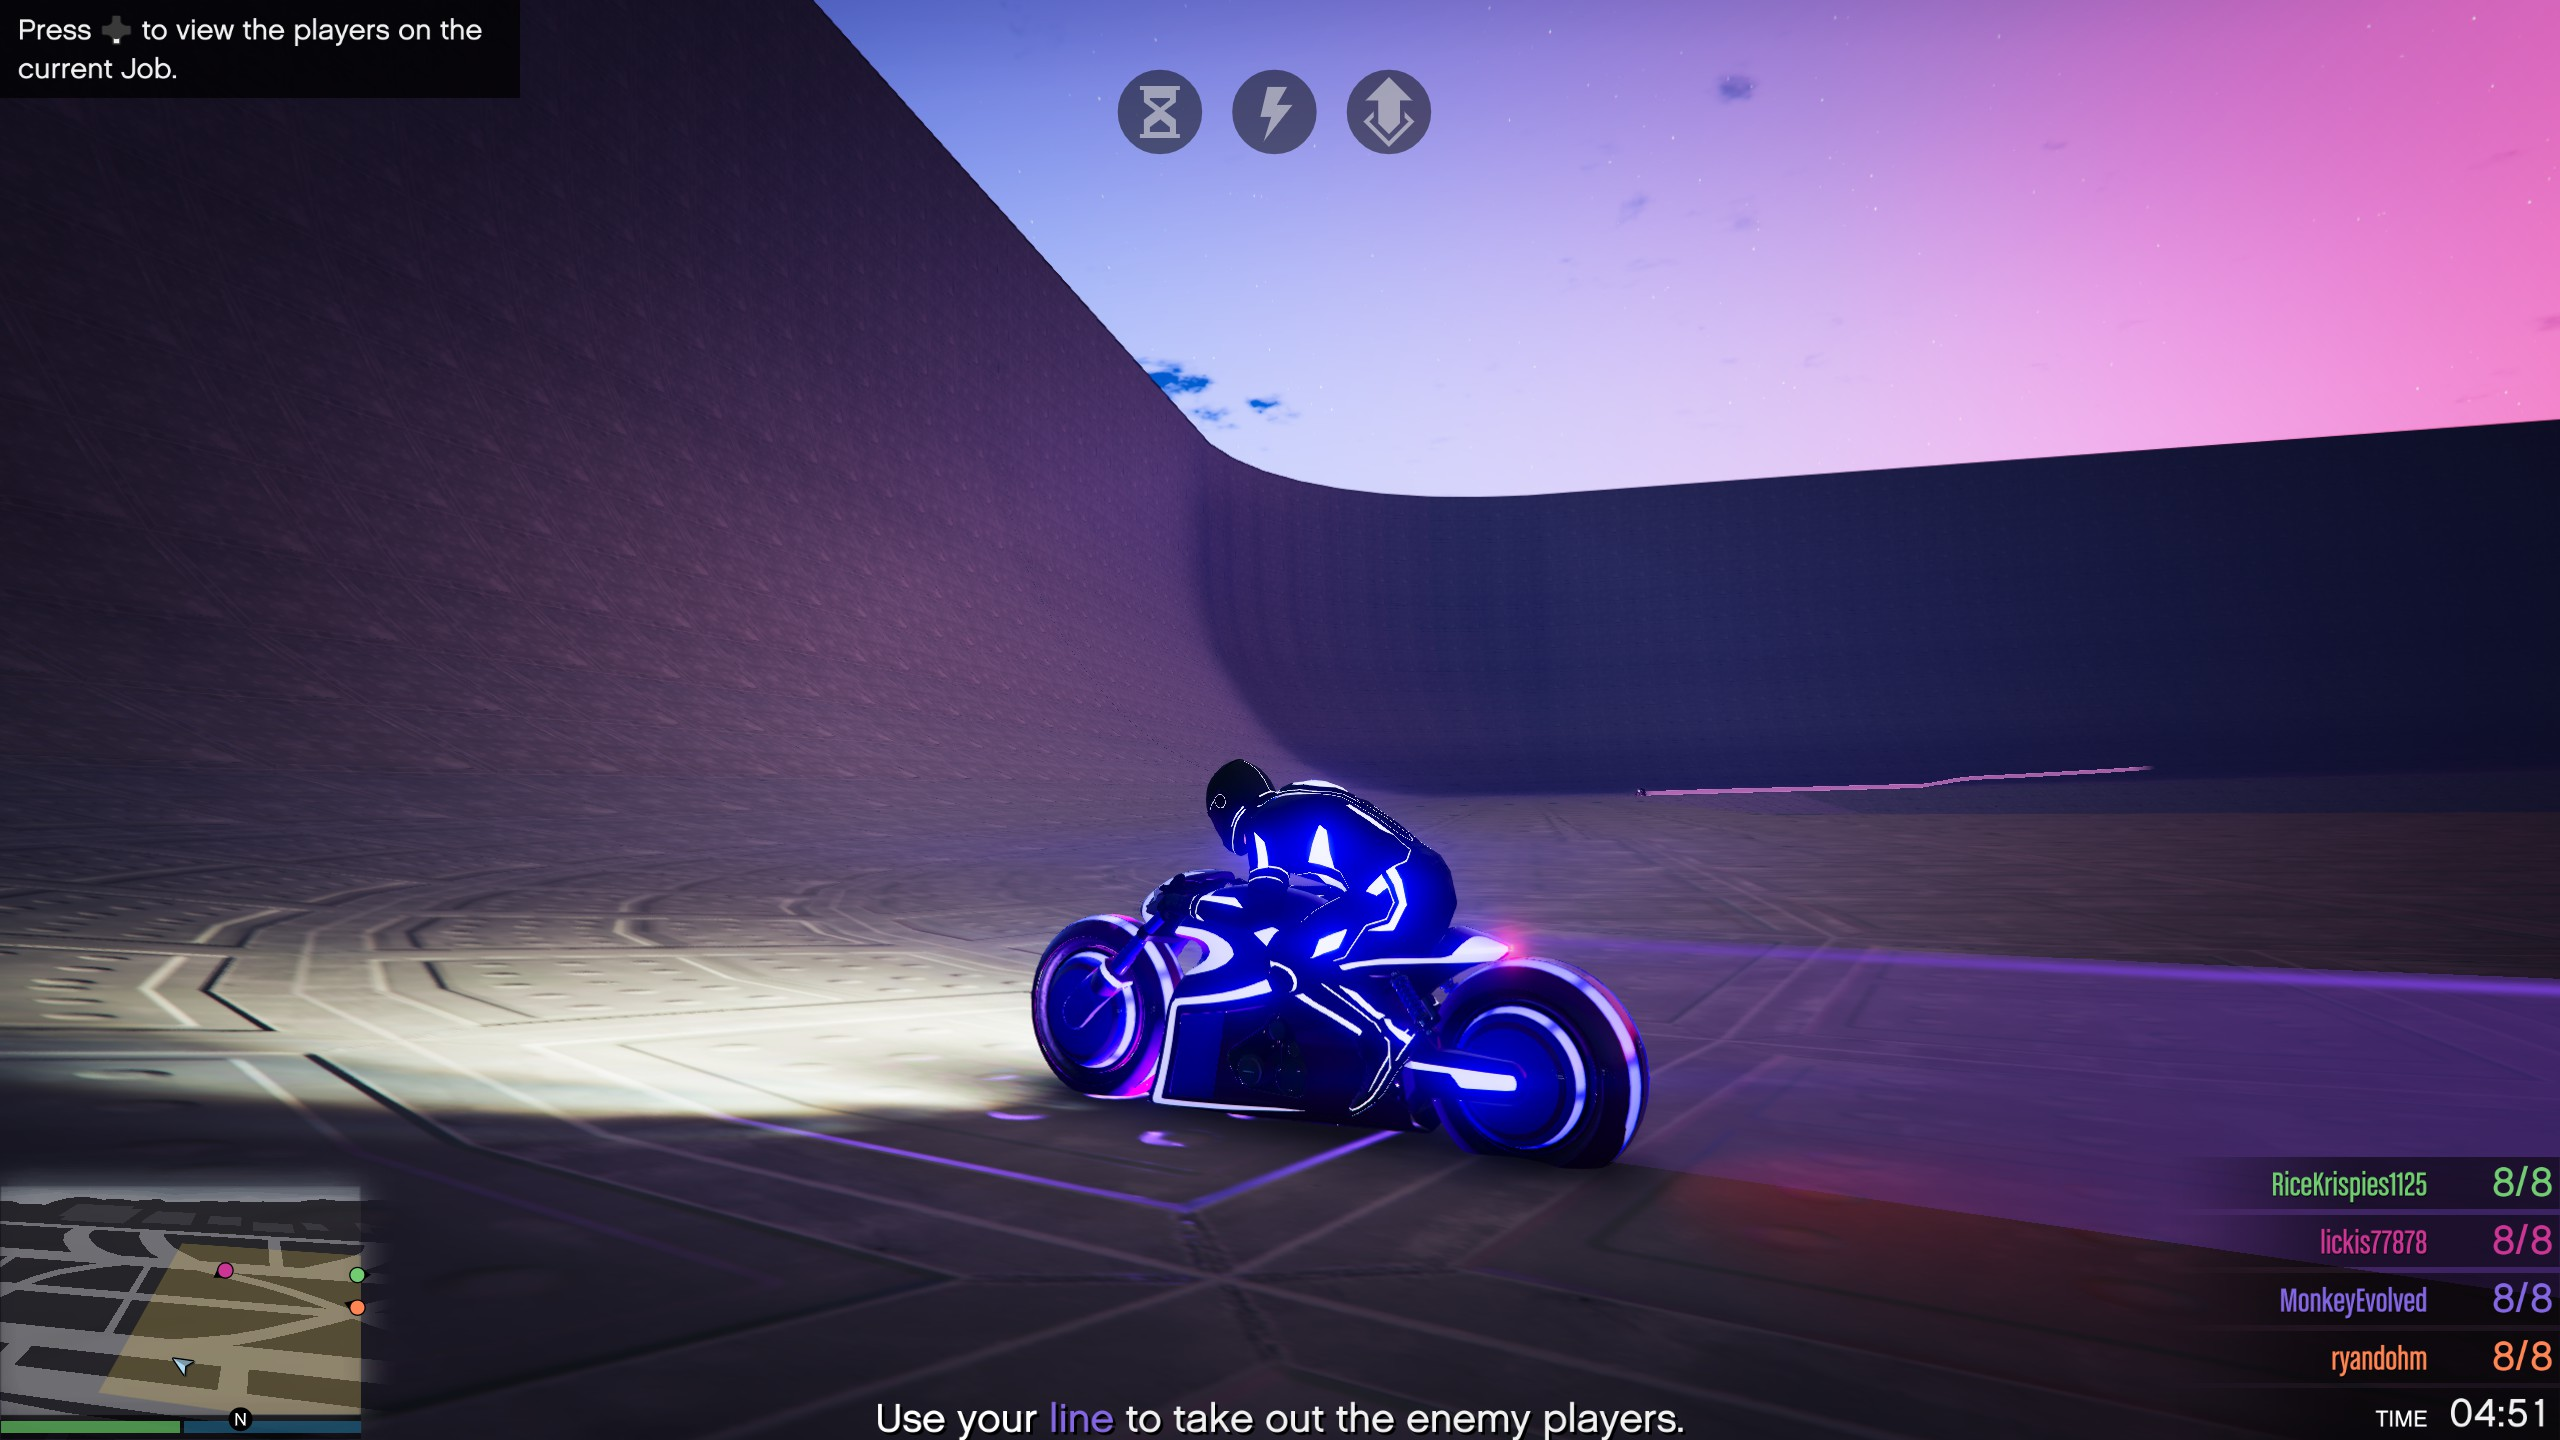 Nagasaki Shotaro / Tron Motorcycle (Deadline) GTA 5 - Newb Gaming